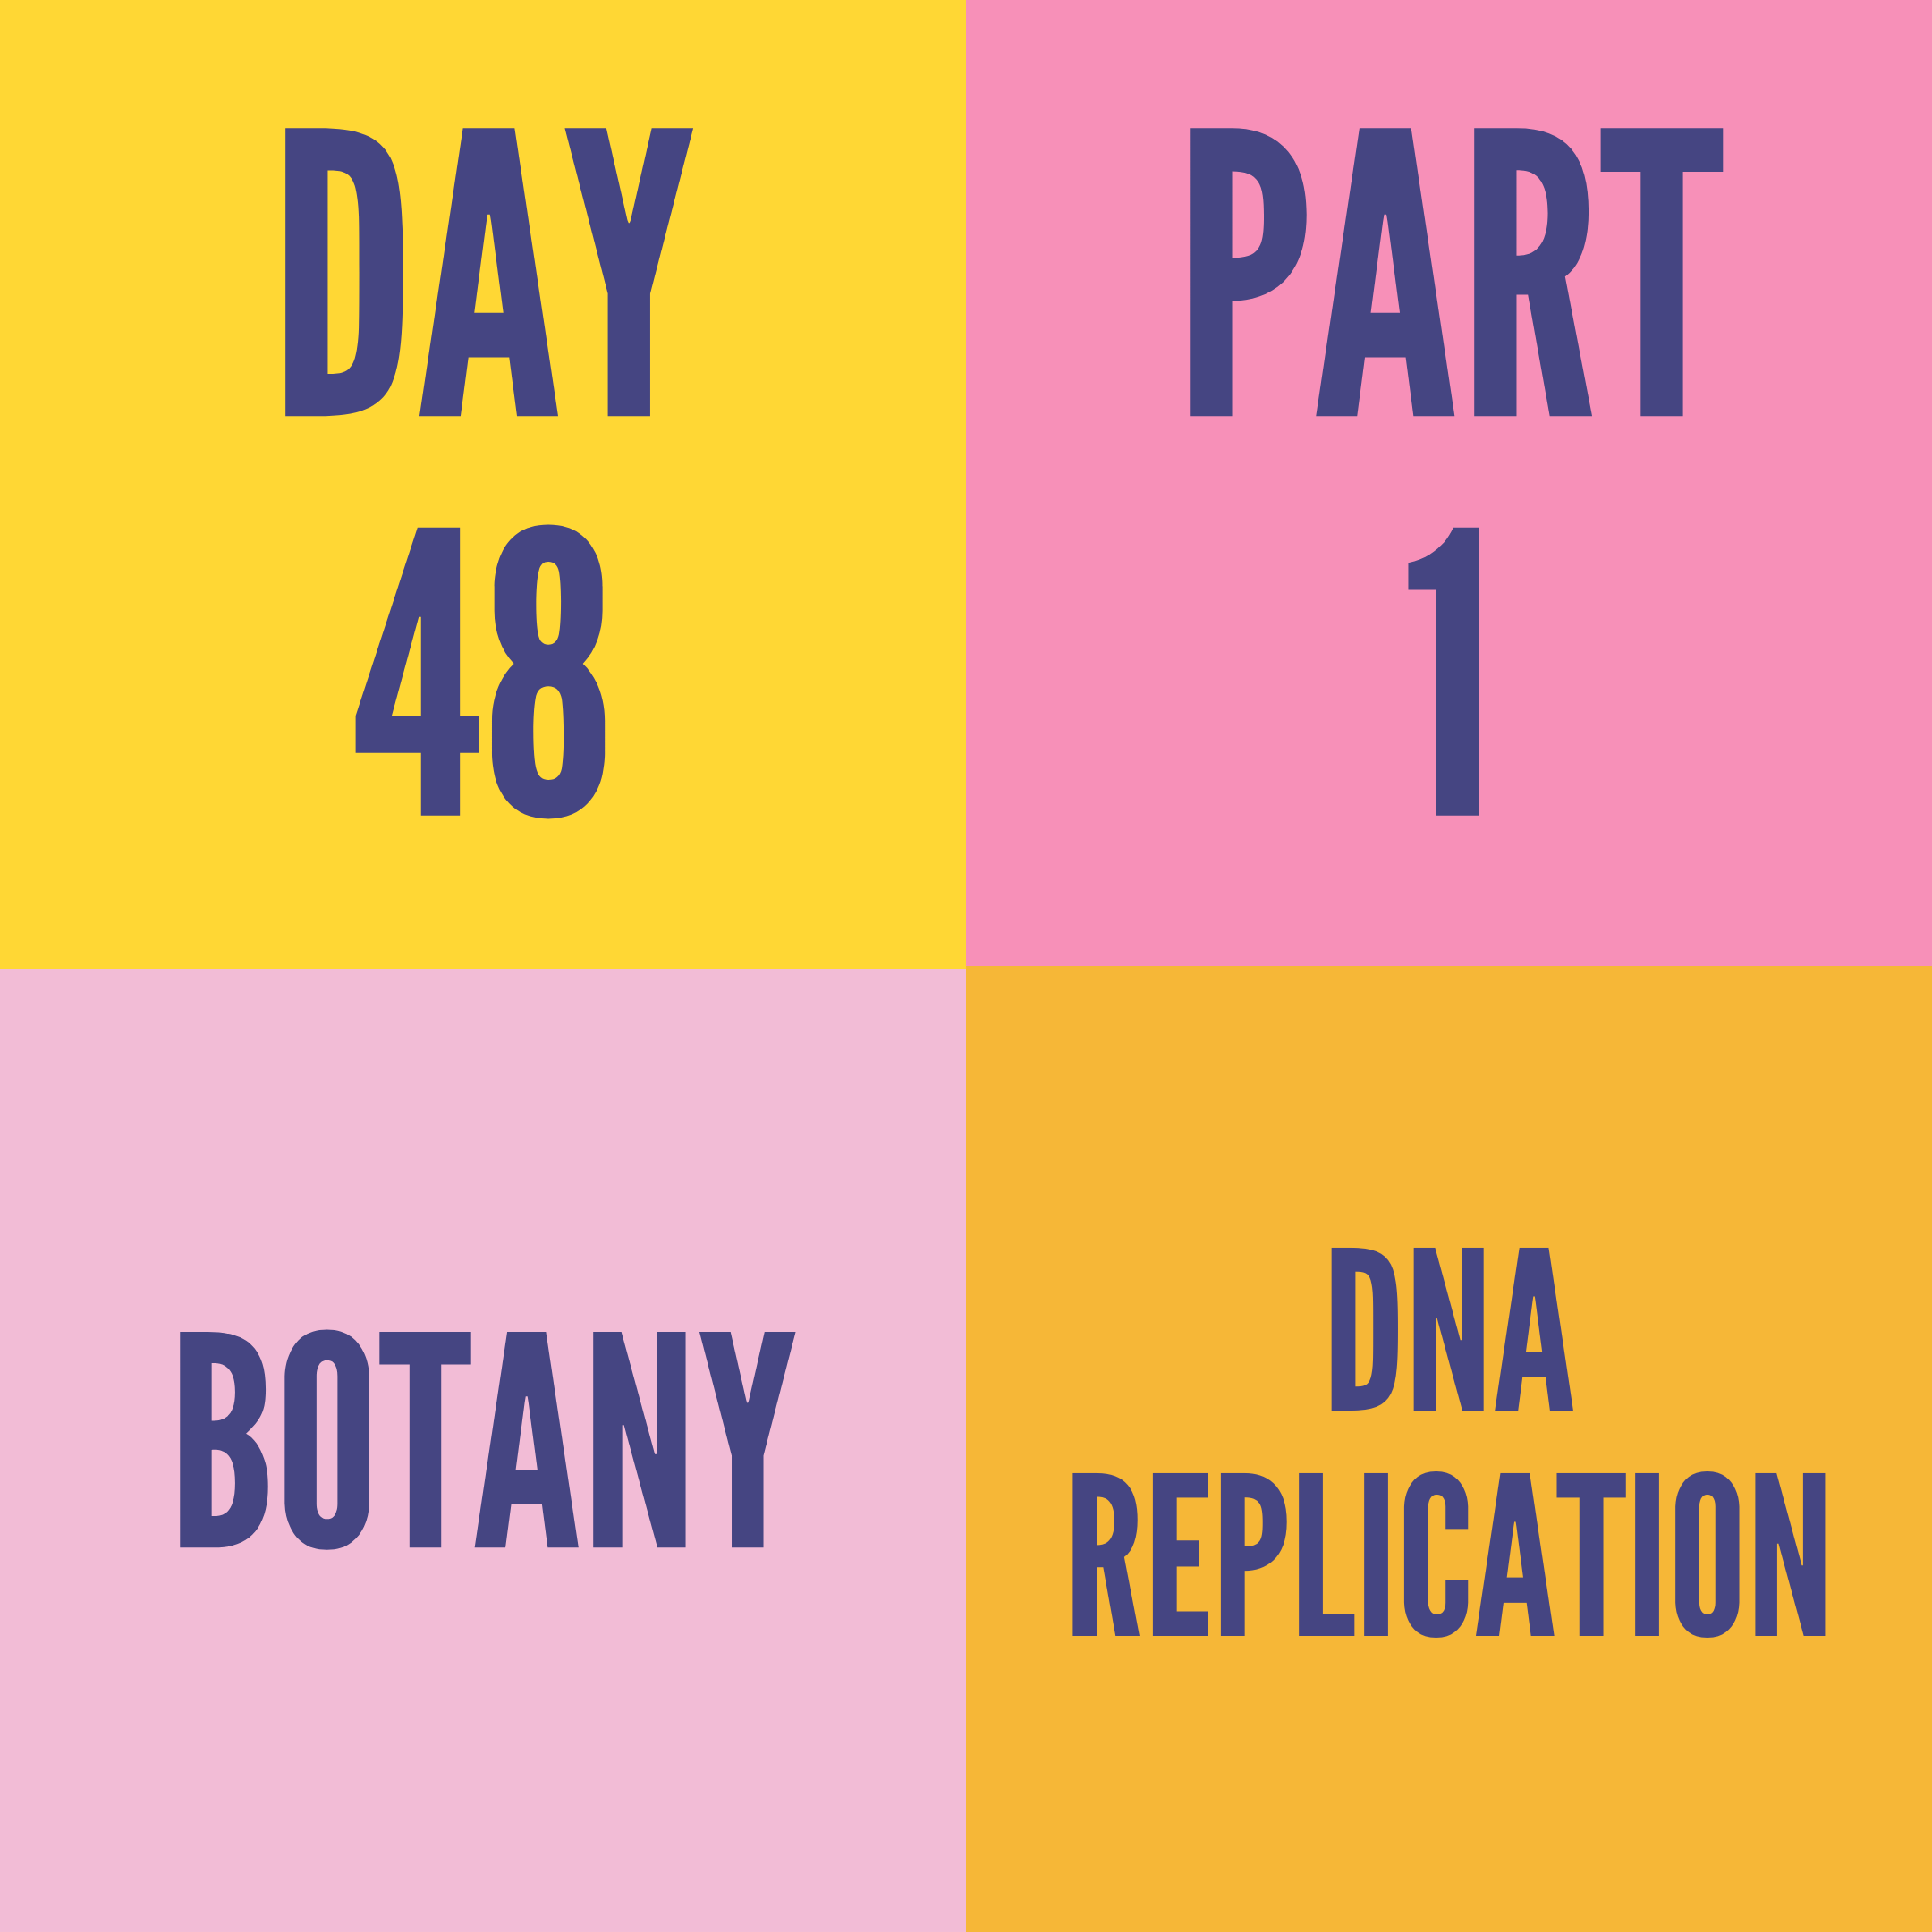 DAY-48 PART-1 DNA REPLICATION